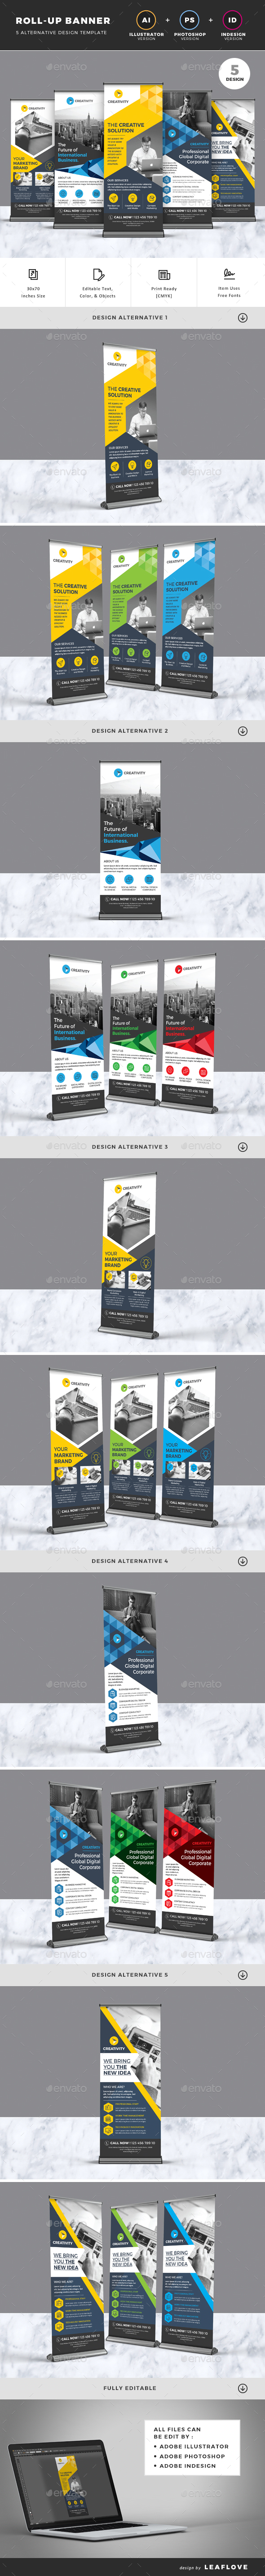 Roll Up InDesign Graphics, Designs & Templates from GraphicRiver